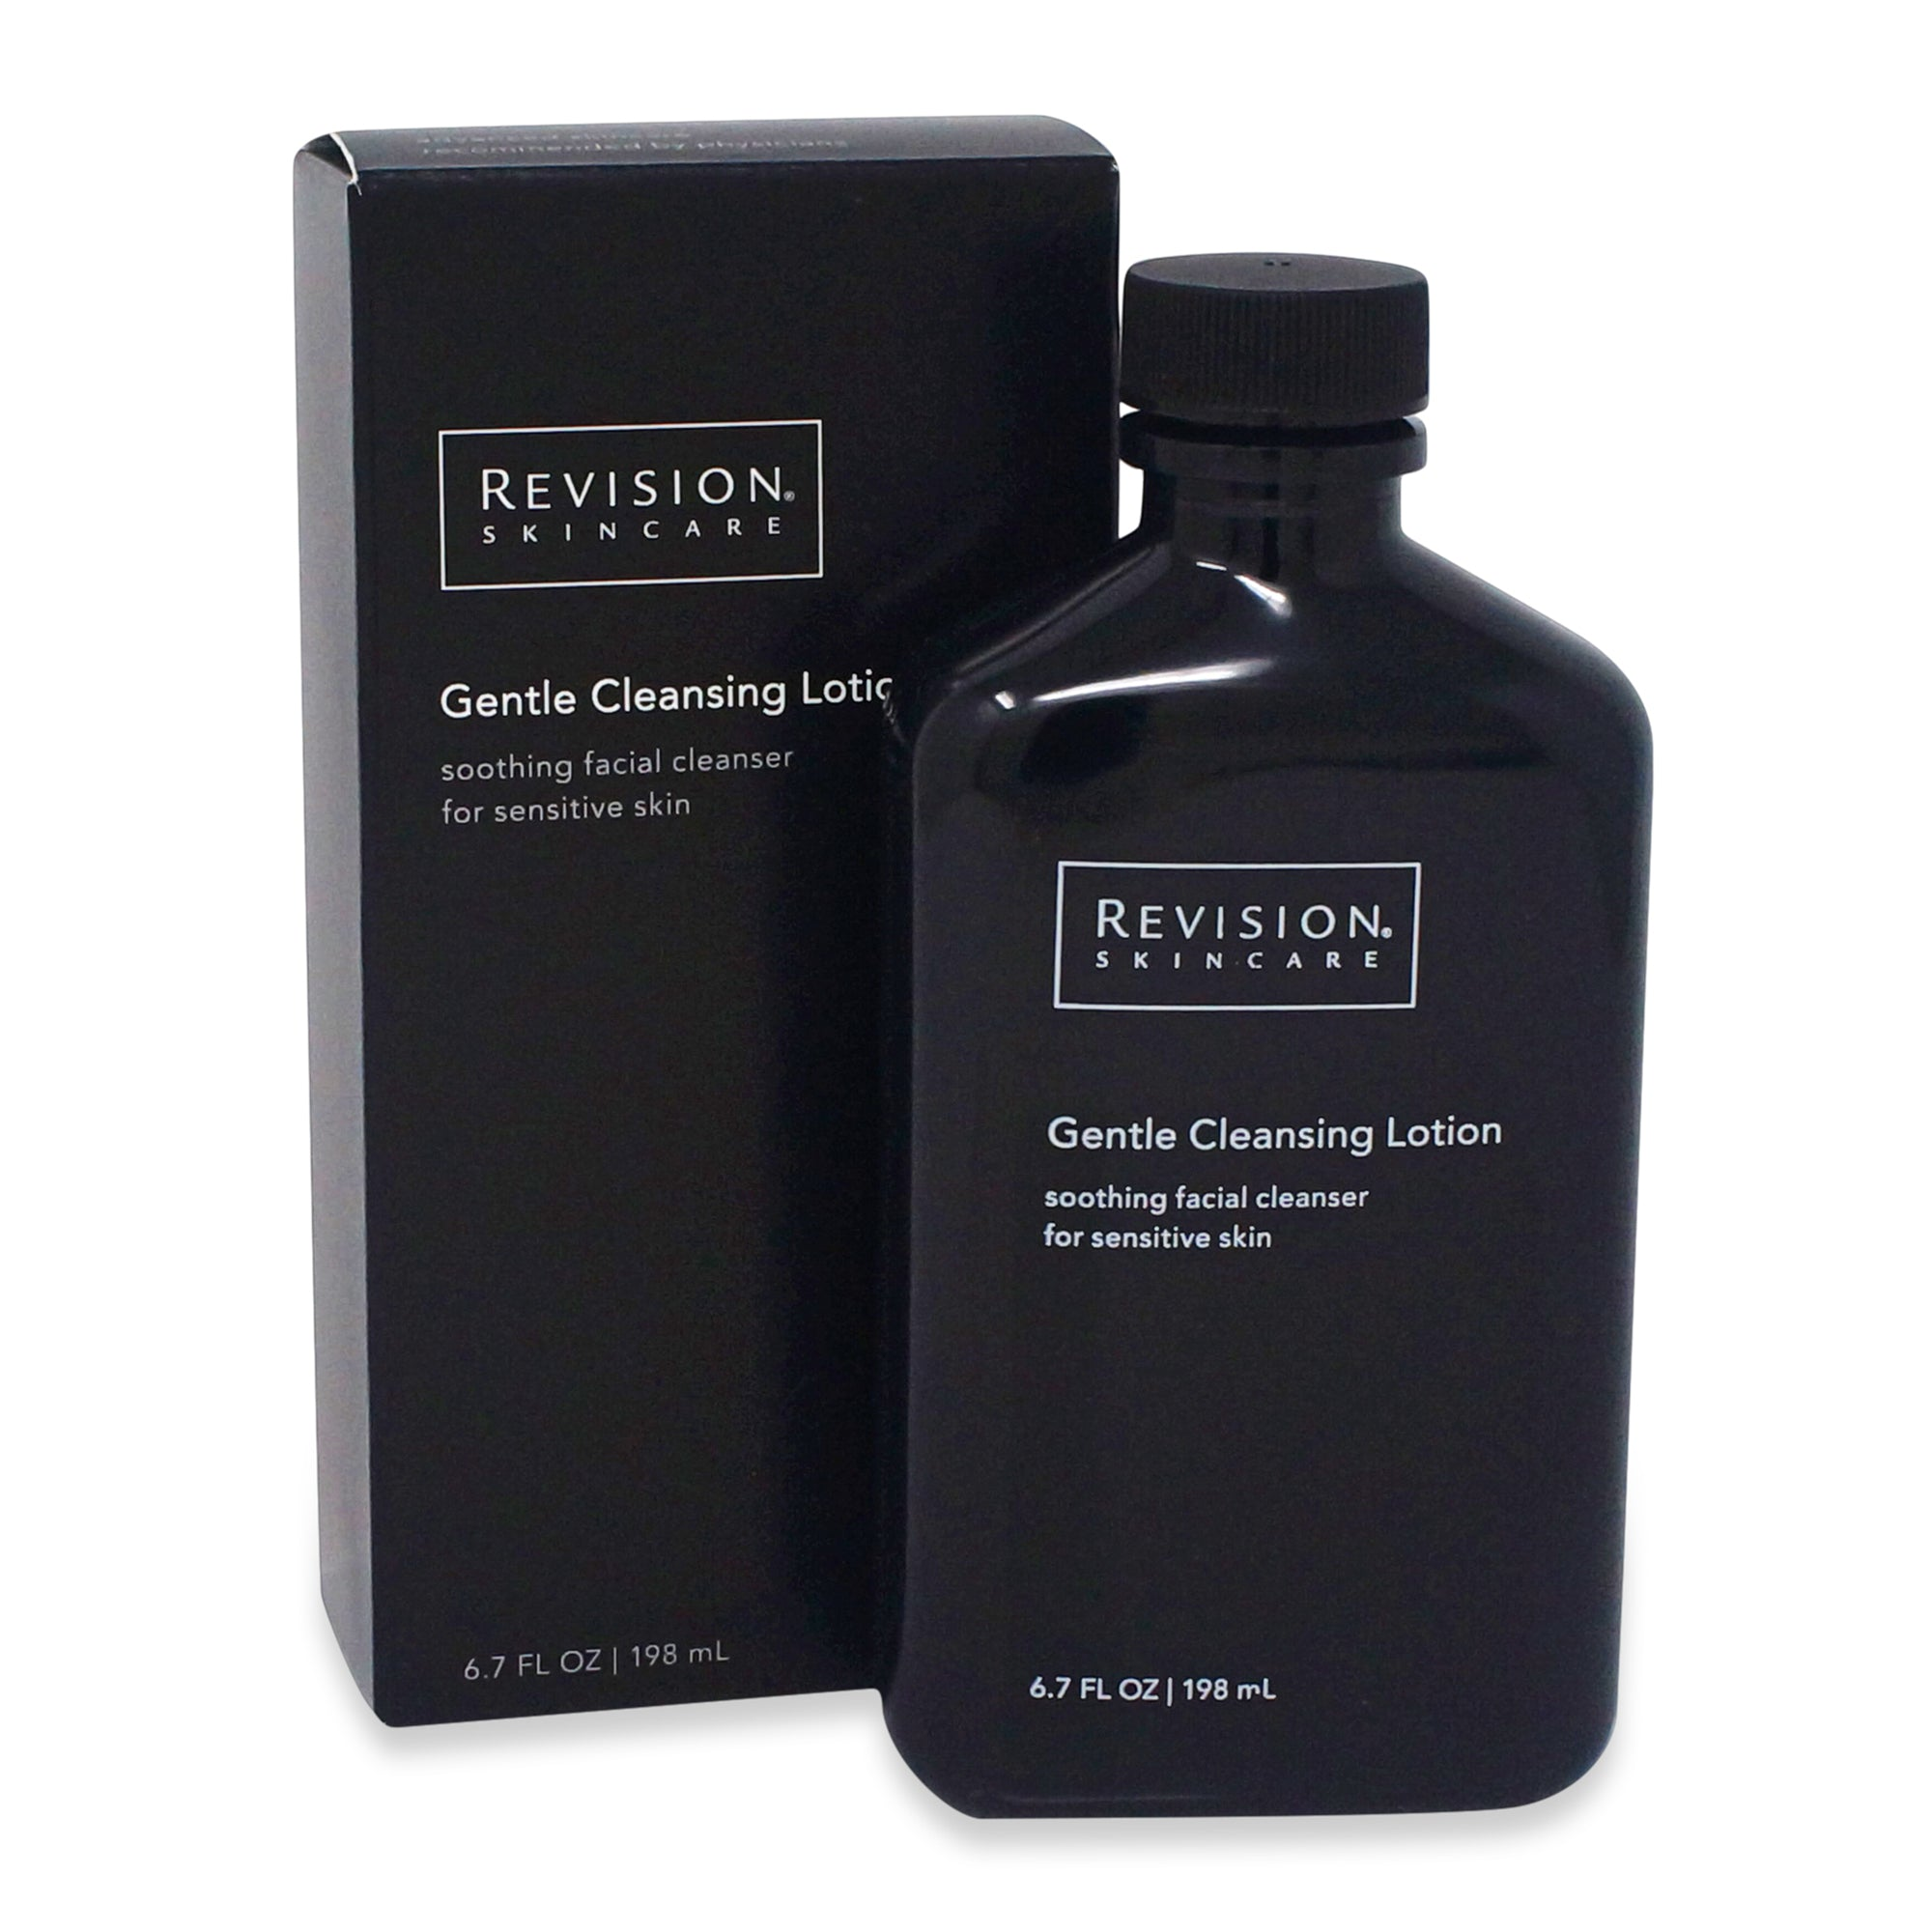 REVISION ~ GENTLE CLEANSING LOTION ~ 6.7 FL OZ BOTTLE